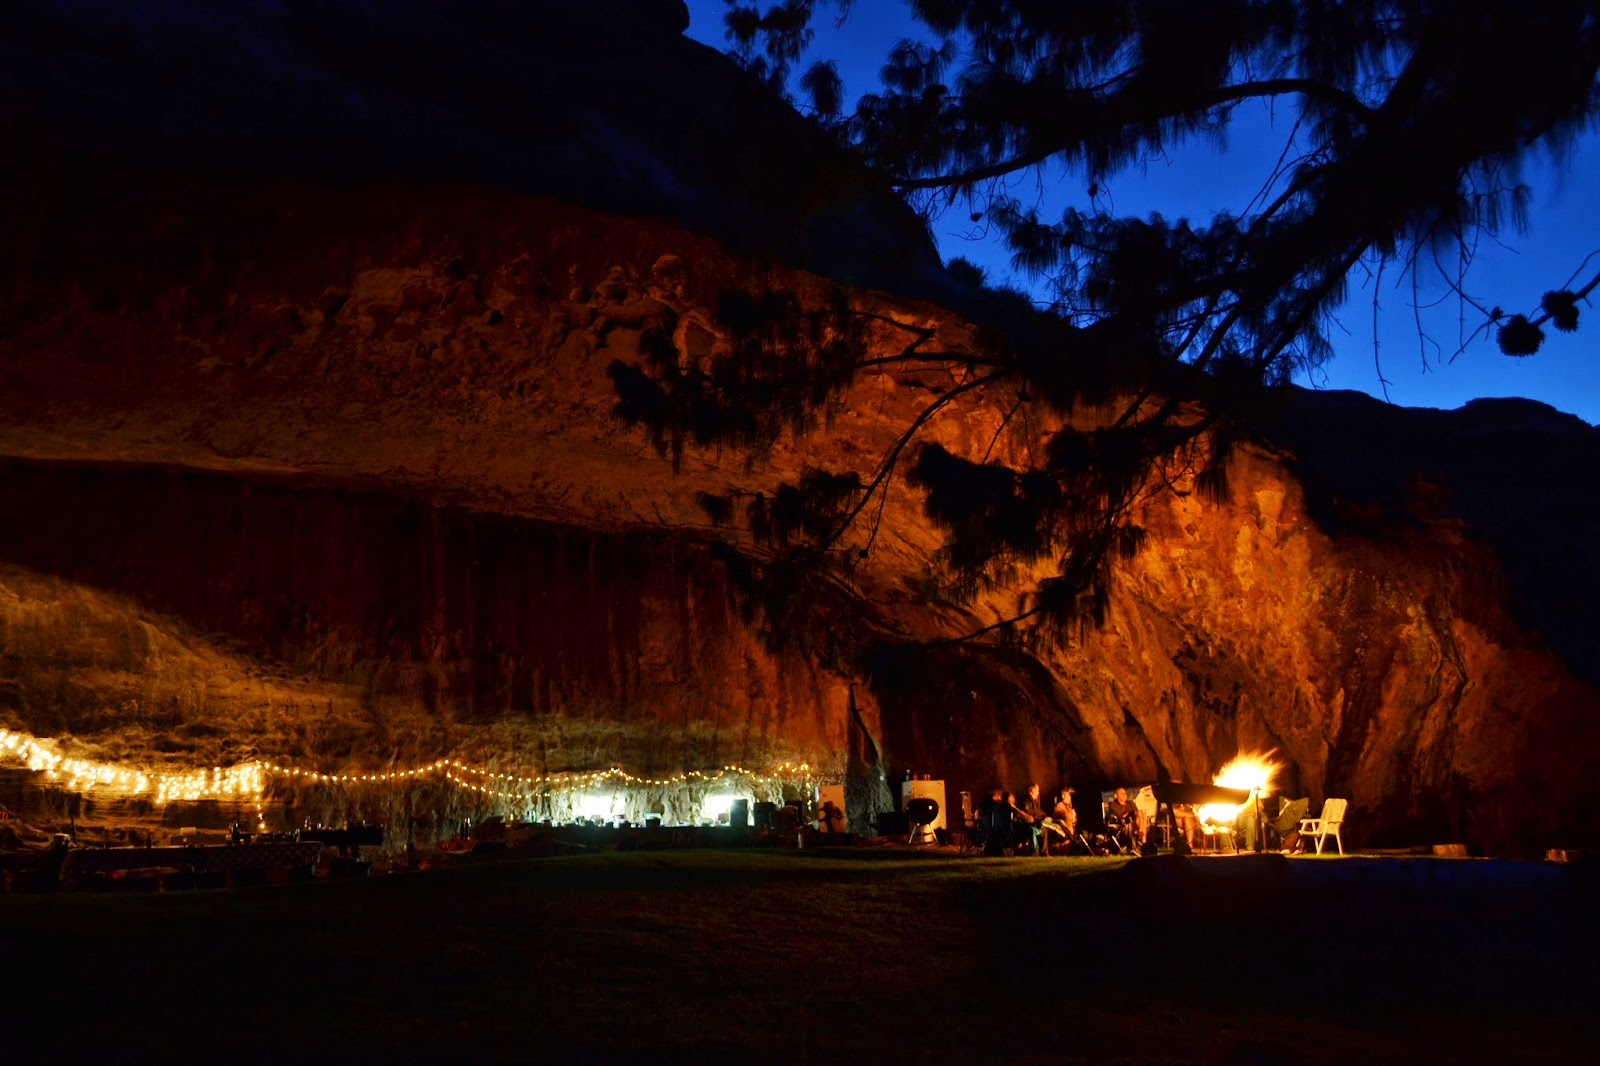 Big cave lit by fairy lights